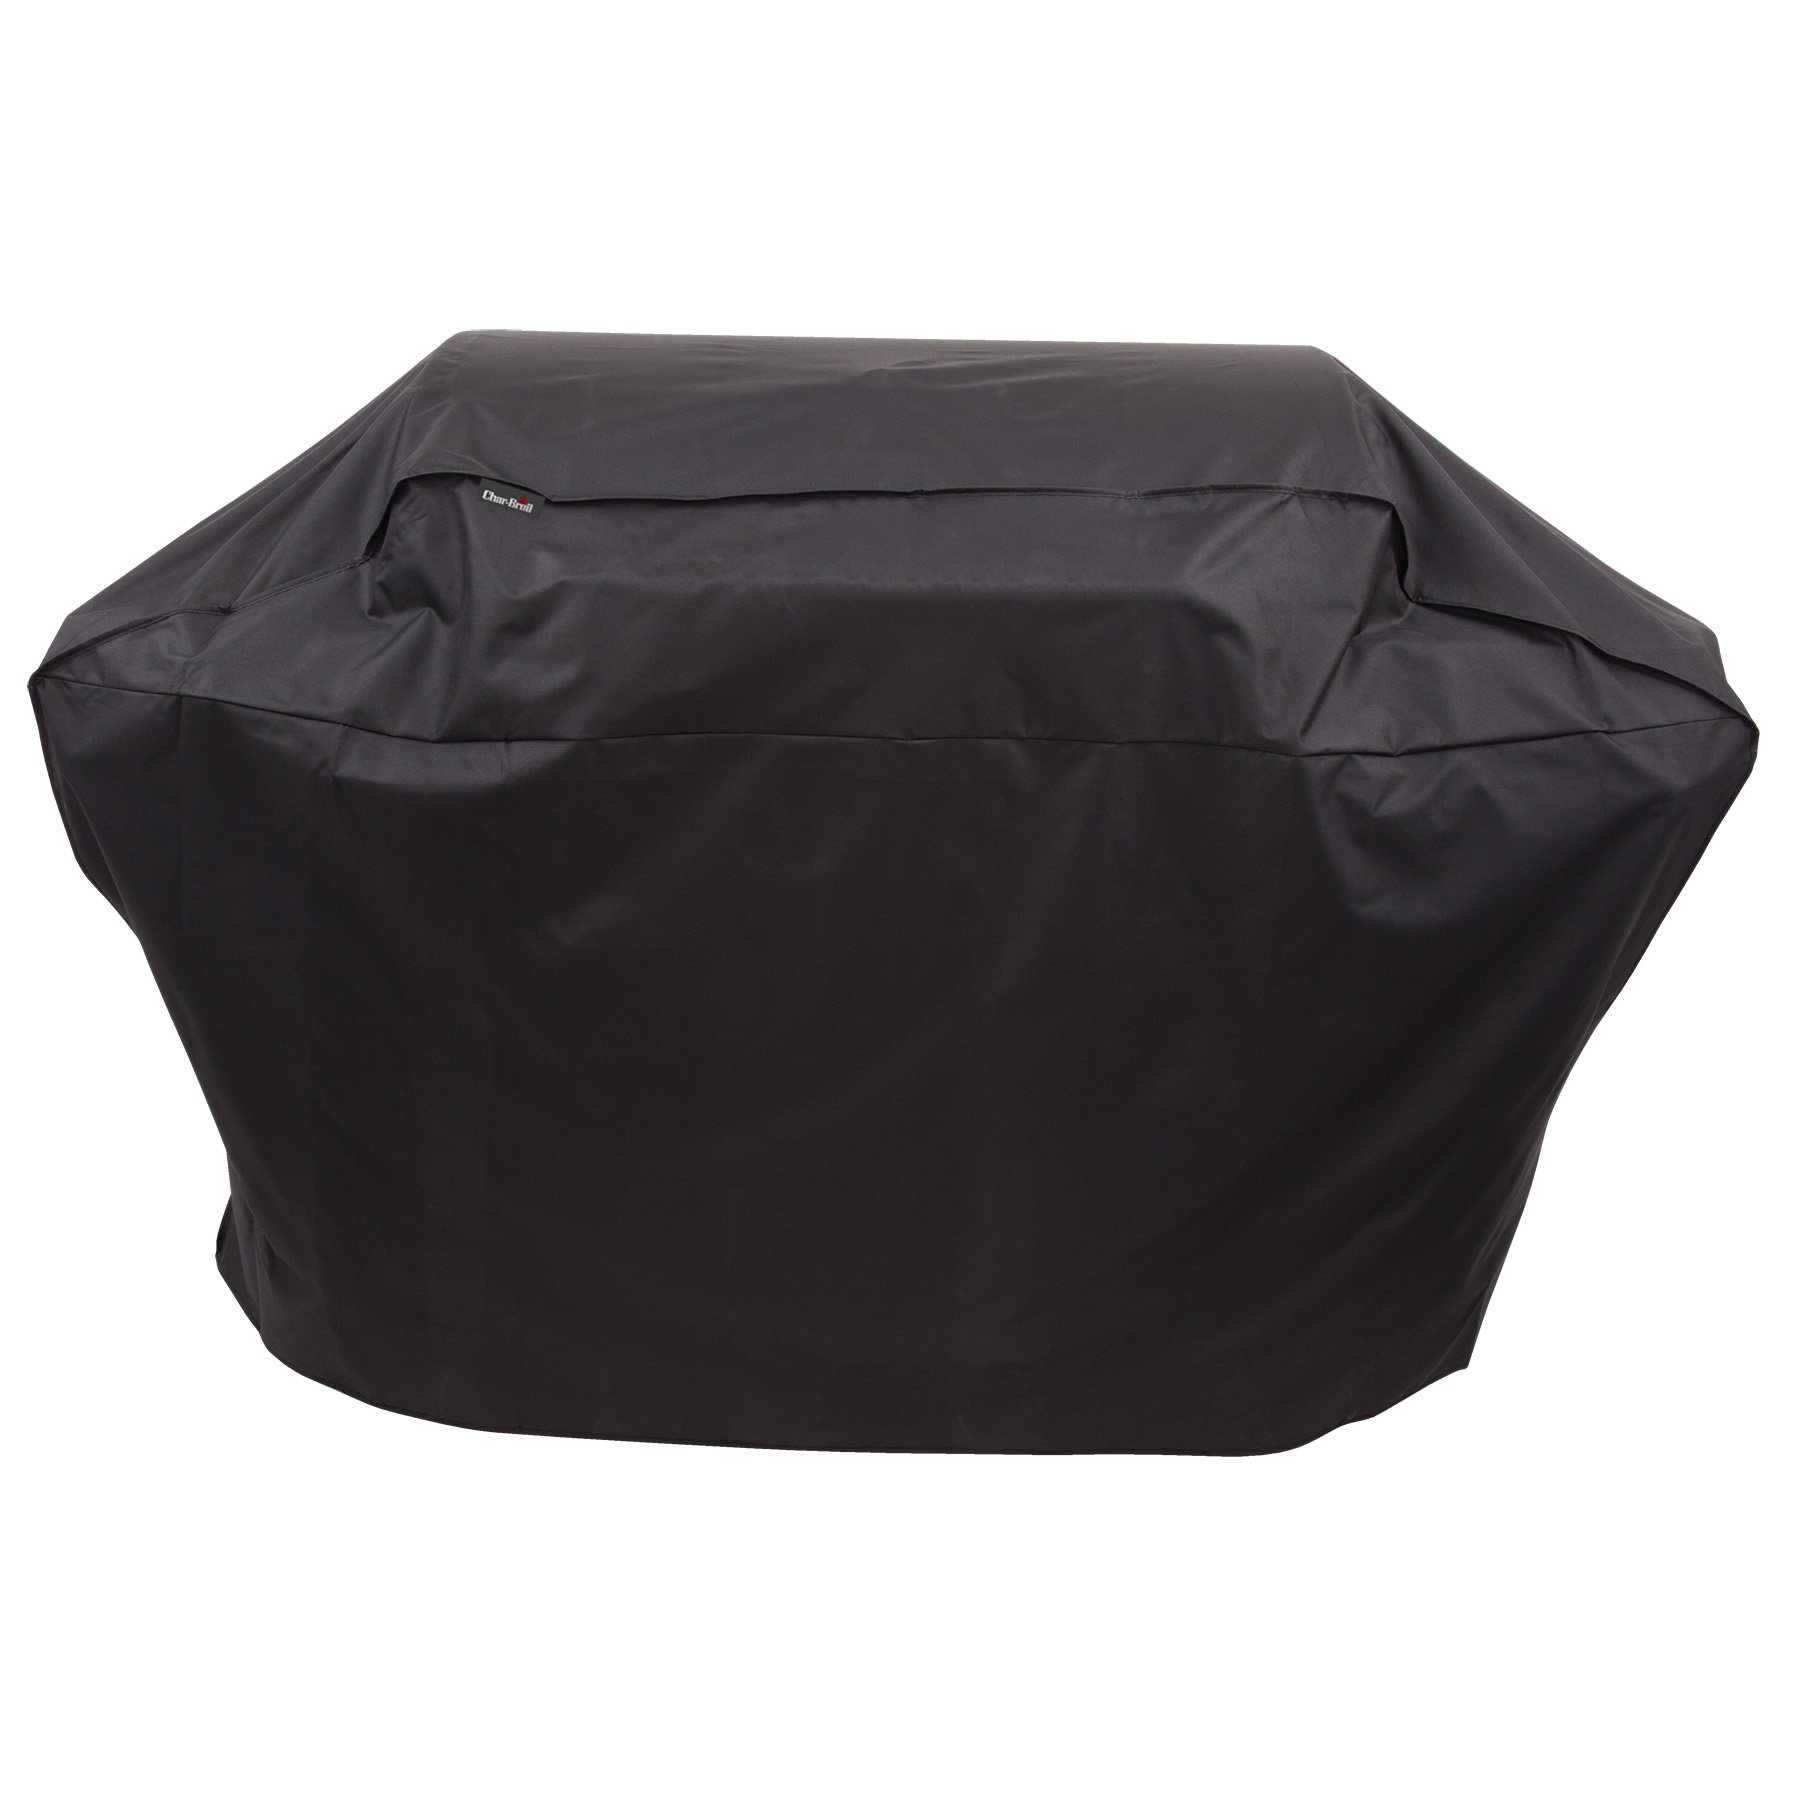 Char-Broil All-Season Grill Cover, 5+ Burner: Extra Large